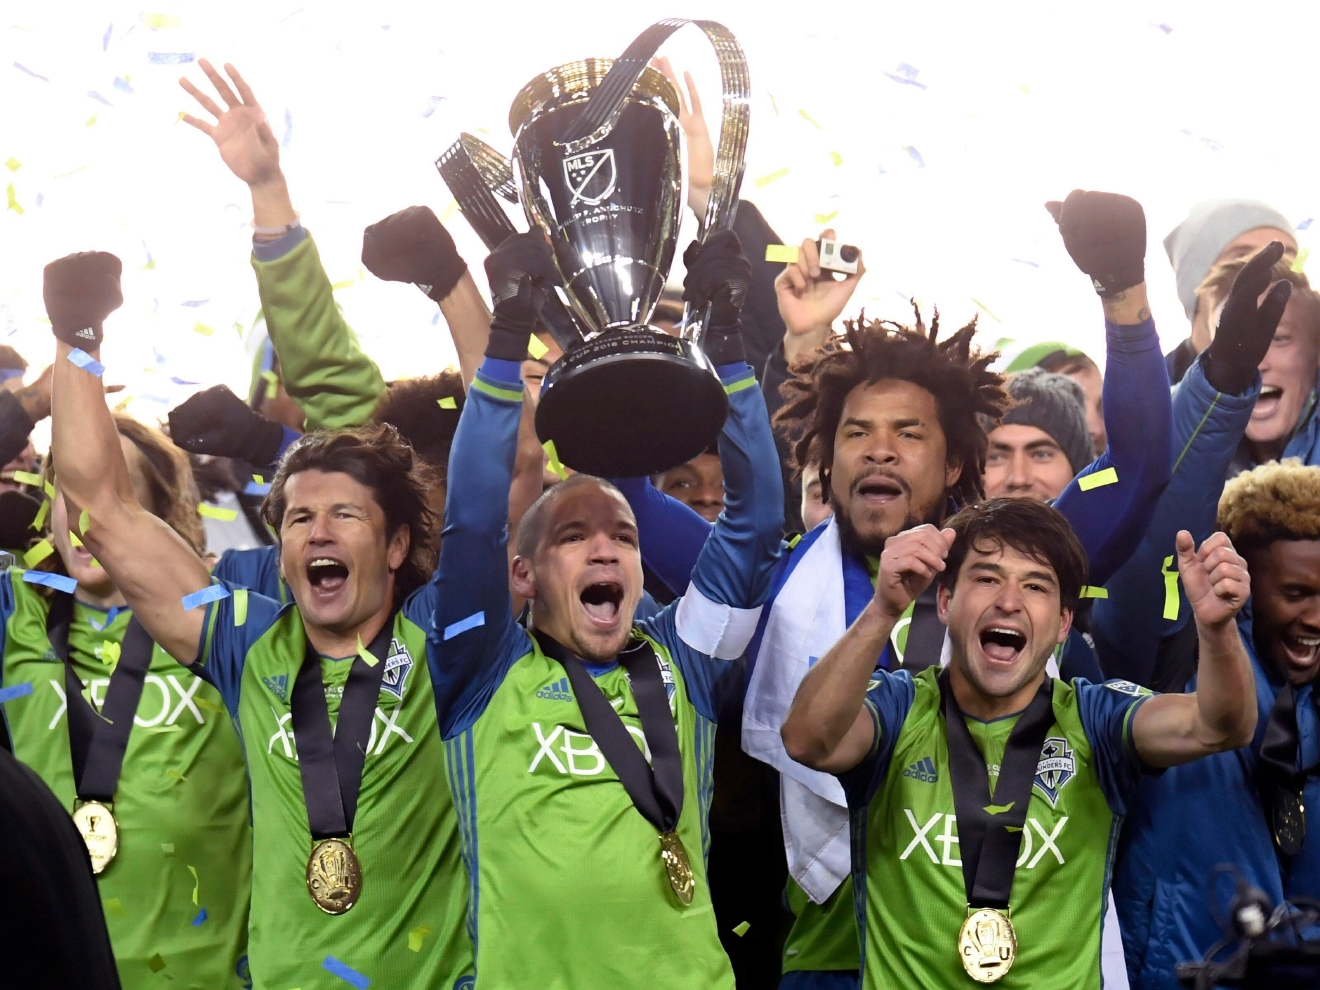 Members of the Seattle Sounders celebrate after winning the MLS Cup soccer final over Toronto FC in Toronto, Saturday, Dec. 10, 2016. Frank Gunn/The Canadian Press via AP)